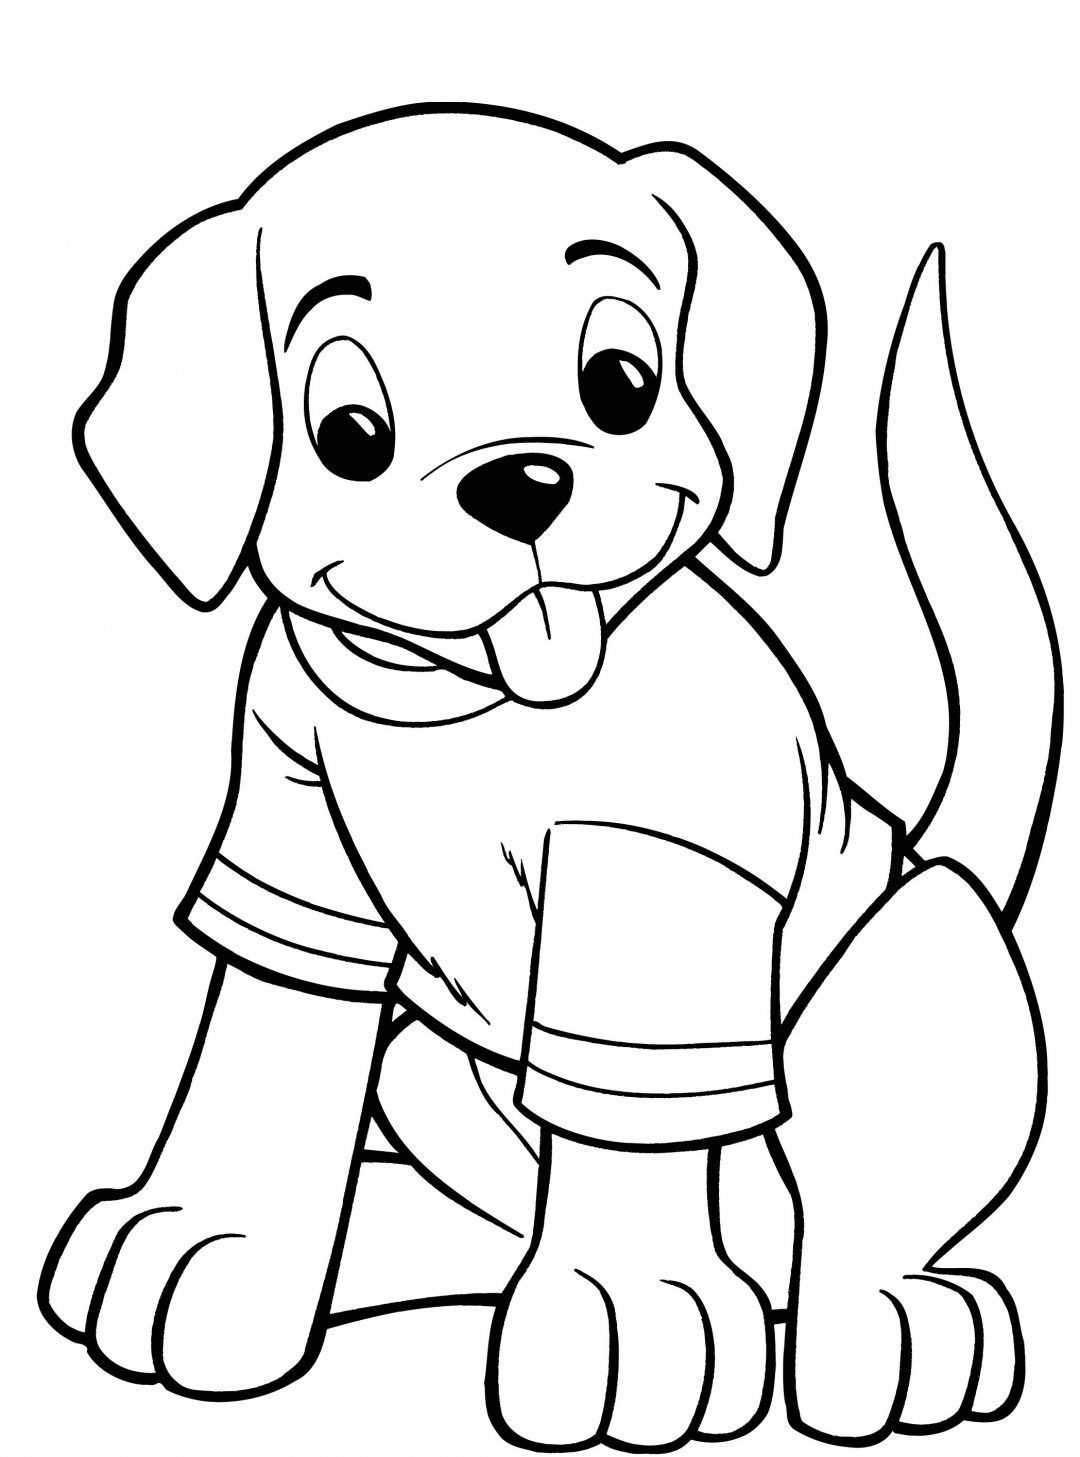 Kindergarten Coloring Pages And Worksheets